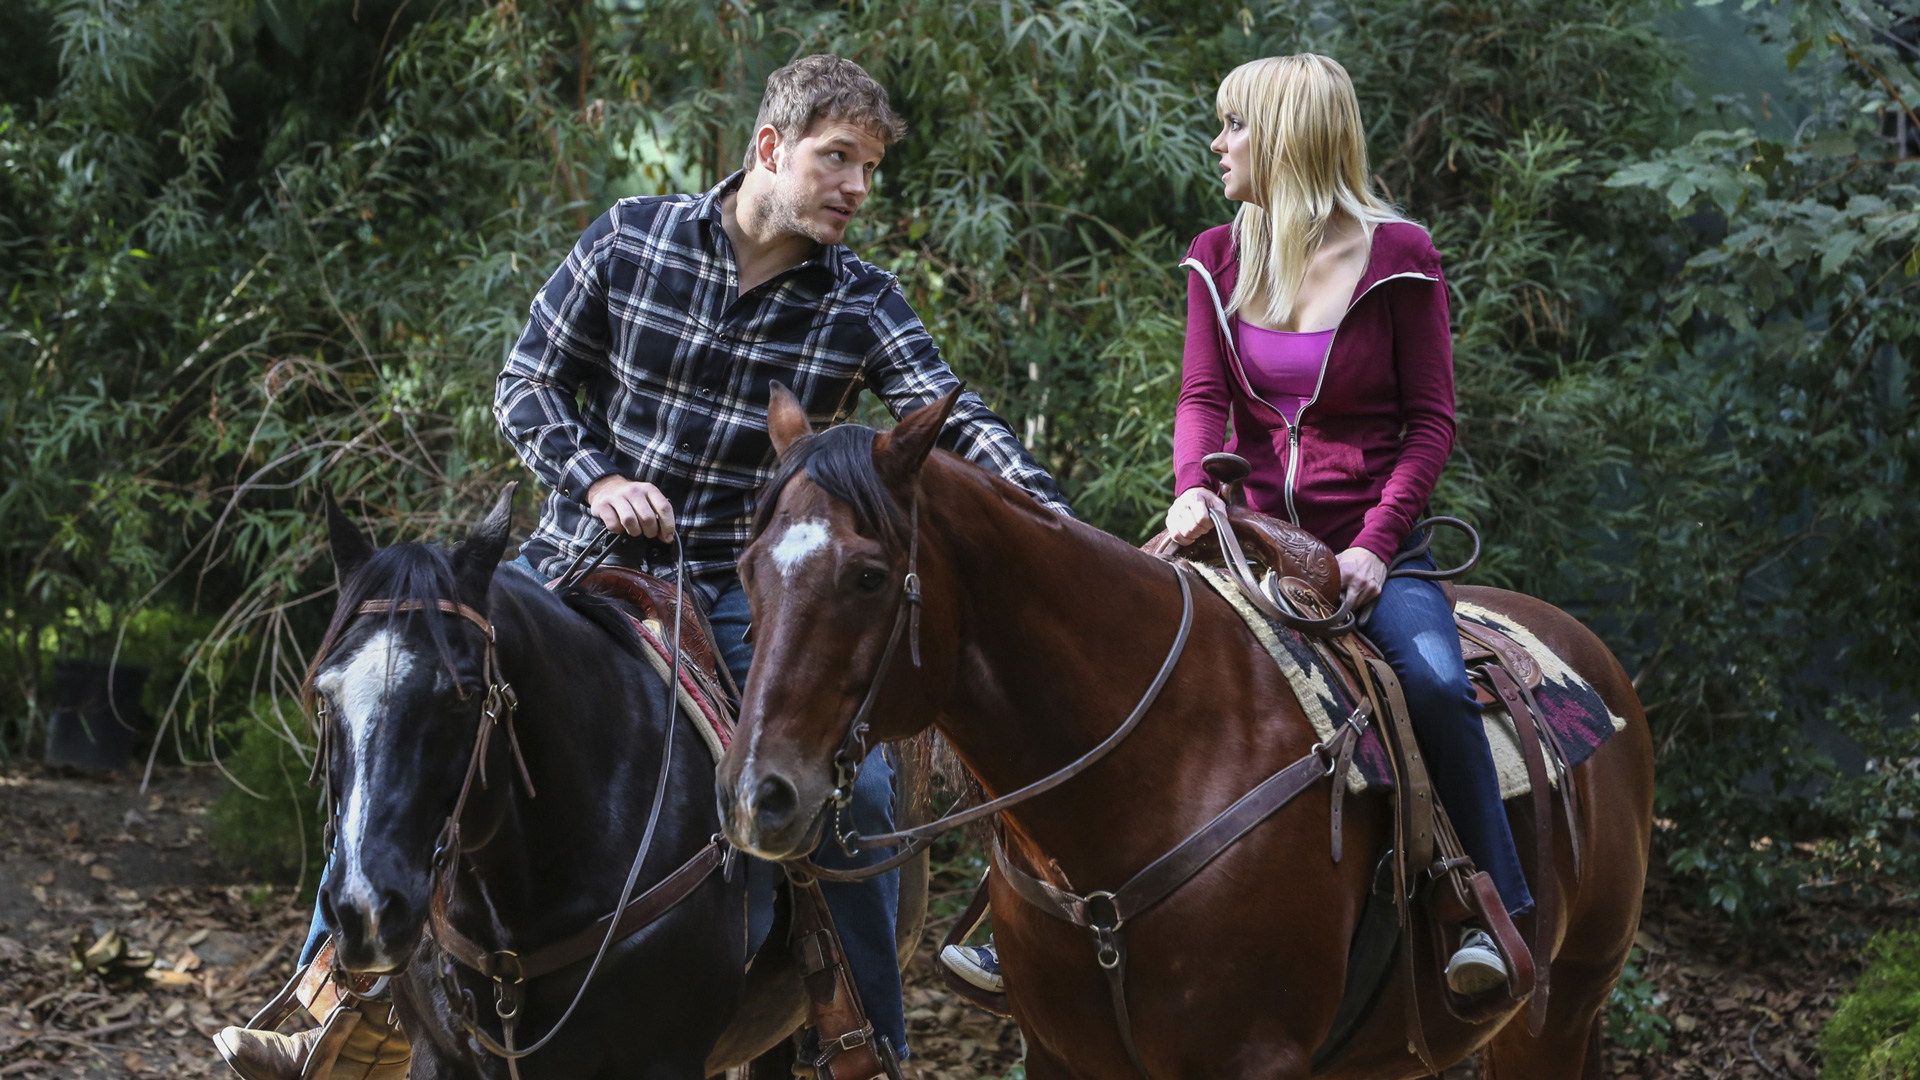 Nick and Christy spend an afternoon horseback riding.